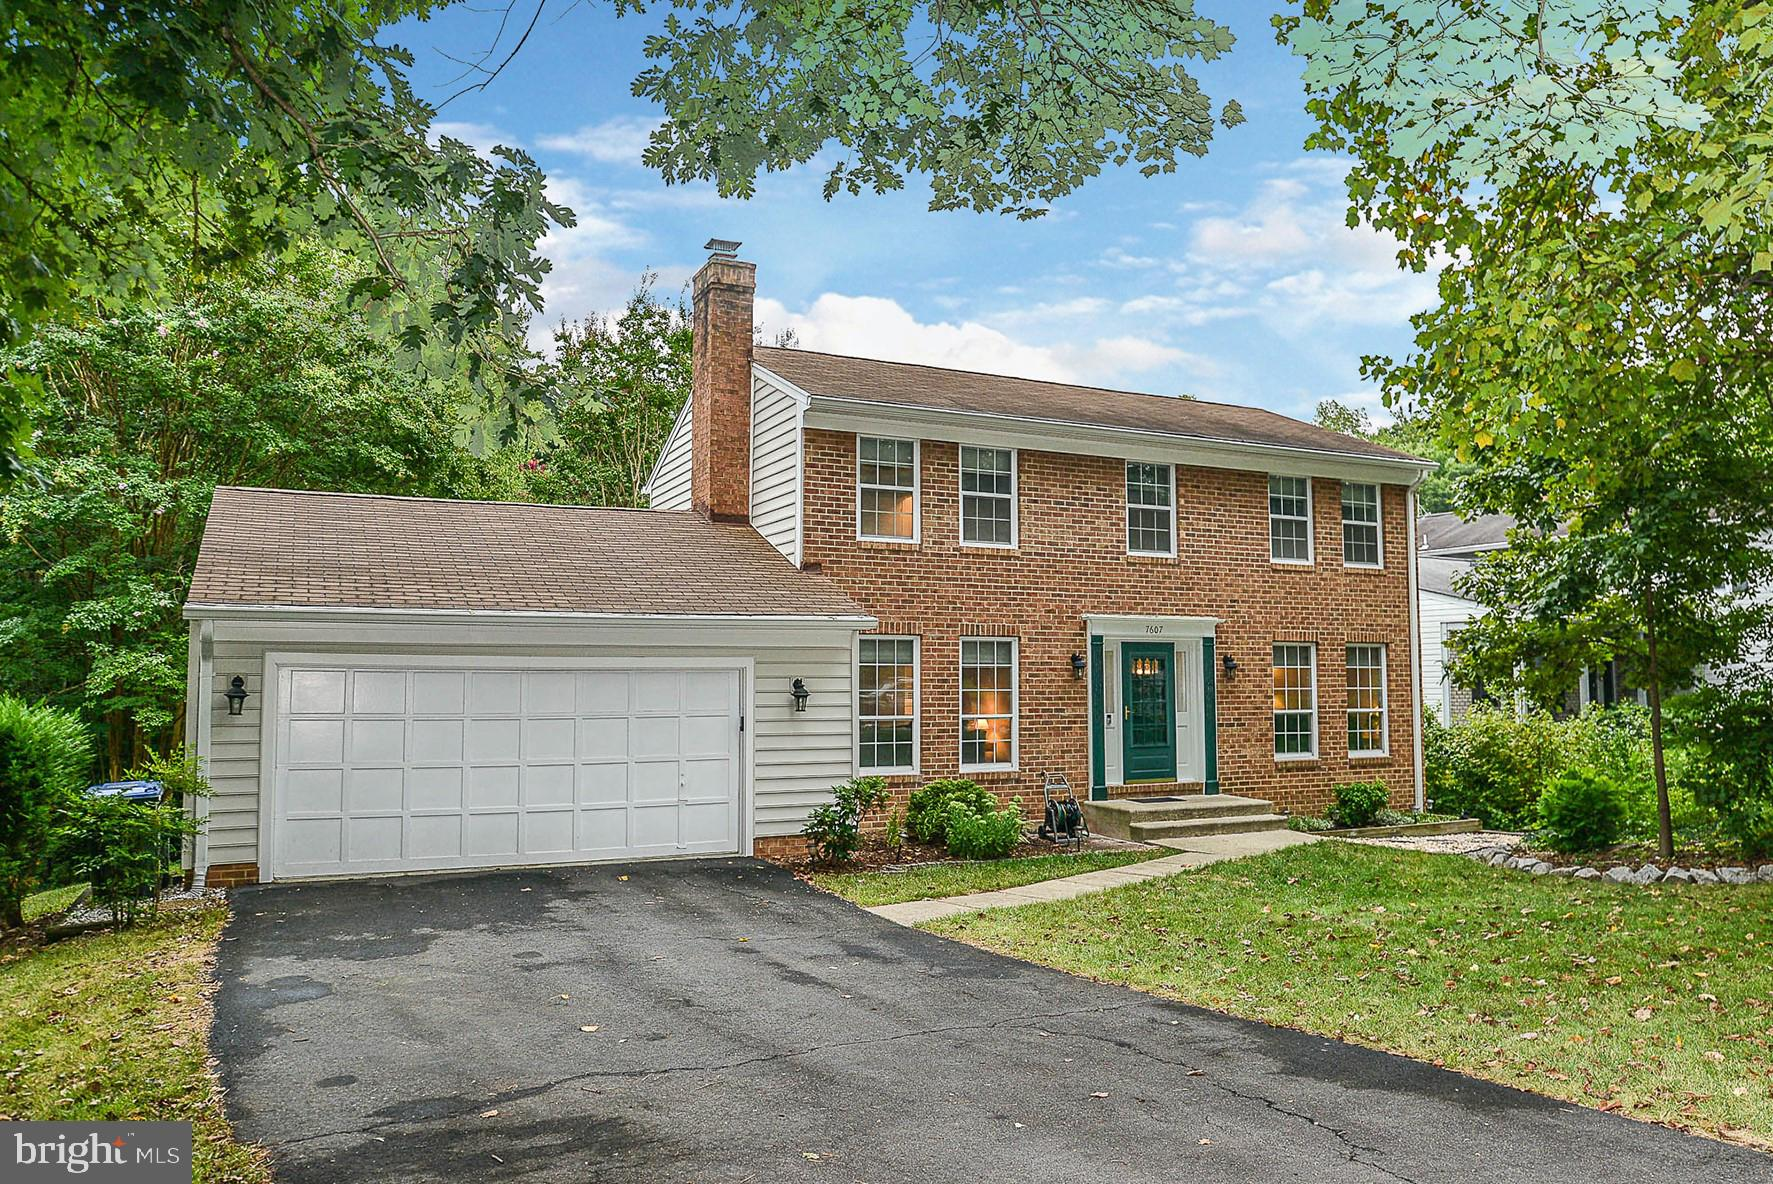 This is the one you have been waiting for! Stunning Colonial in sought after Lakewood Hills - Totally remodeled from top to bottom! All new flooring and fresh paint throughout. Incredible kitchen renovation features quartzite counters, upgraded stainless-steel appliances, elegant white cabinets with under cabinet lighting, decorative tile backsplash, ceramic tile flooring and recessed lighting.  Living and dining room with crown molding and new hardwood floors. From the dining room, step outside to an oversized covered deck. This is the perfect place to grill or entertain! Cozy family room with unique wood beamed ceiling, brick fireplace with wood stove insert and hardwood floors. Renovated half bath and laundry room also on the main level. On the upper level you~ll find a large master bedroom with walk-in closet, separate dressing area and private remodeled bath. 3 additional bedrooms and remodeled full bath also upstairs. On the lower level you~ll find a spacious rec room, office with walk-in closet/storage and incredible spa bath with built-in sauna and jetted tub. Walkout basement steps out to deck and private backyard. Two attics and oversized garage provide plenty of extra storage. Upgraded electrical circuit panel. Thermal Siding. High end heating and cooling systems.  Fun and friendly neighborhood with tons of walking trails. Highly sought-after school district! Minutes to shopping, dining and entertainment and all major commuter routes/VRE/Metro. This home has it all!